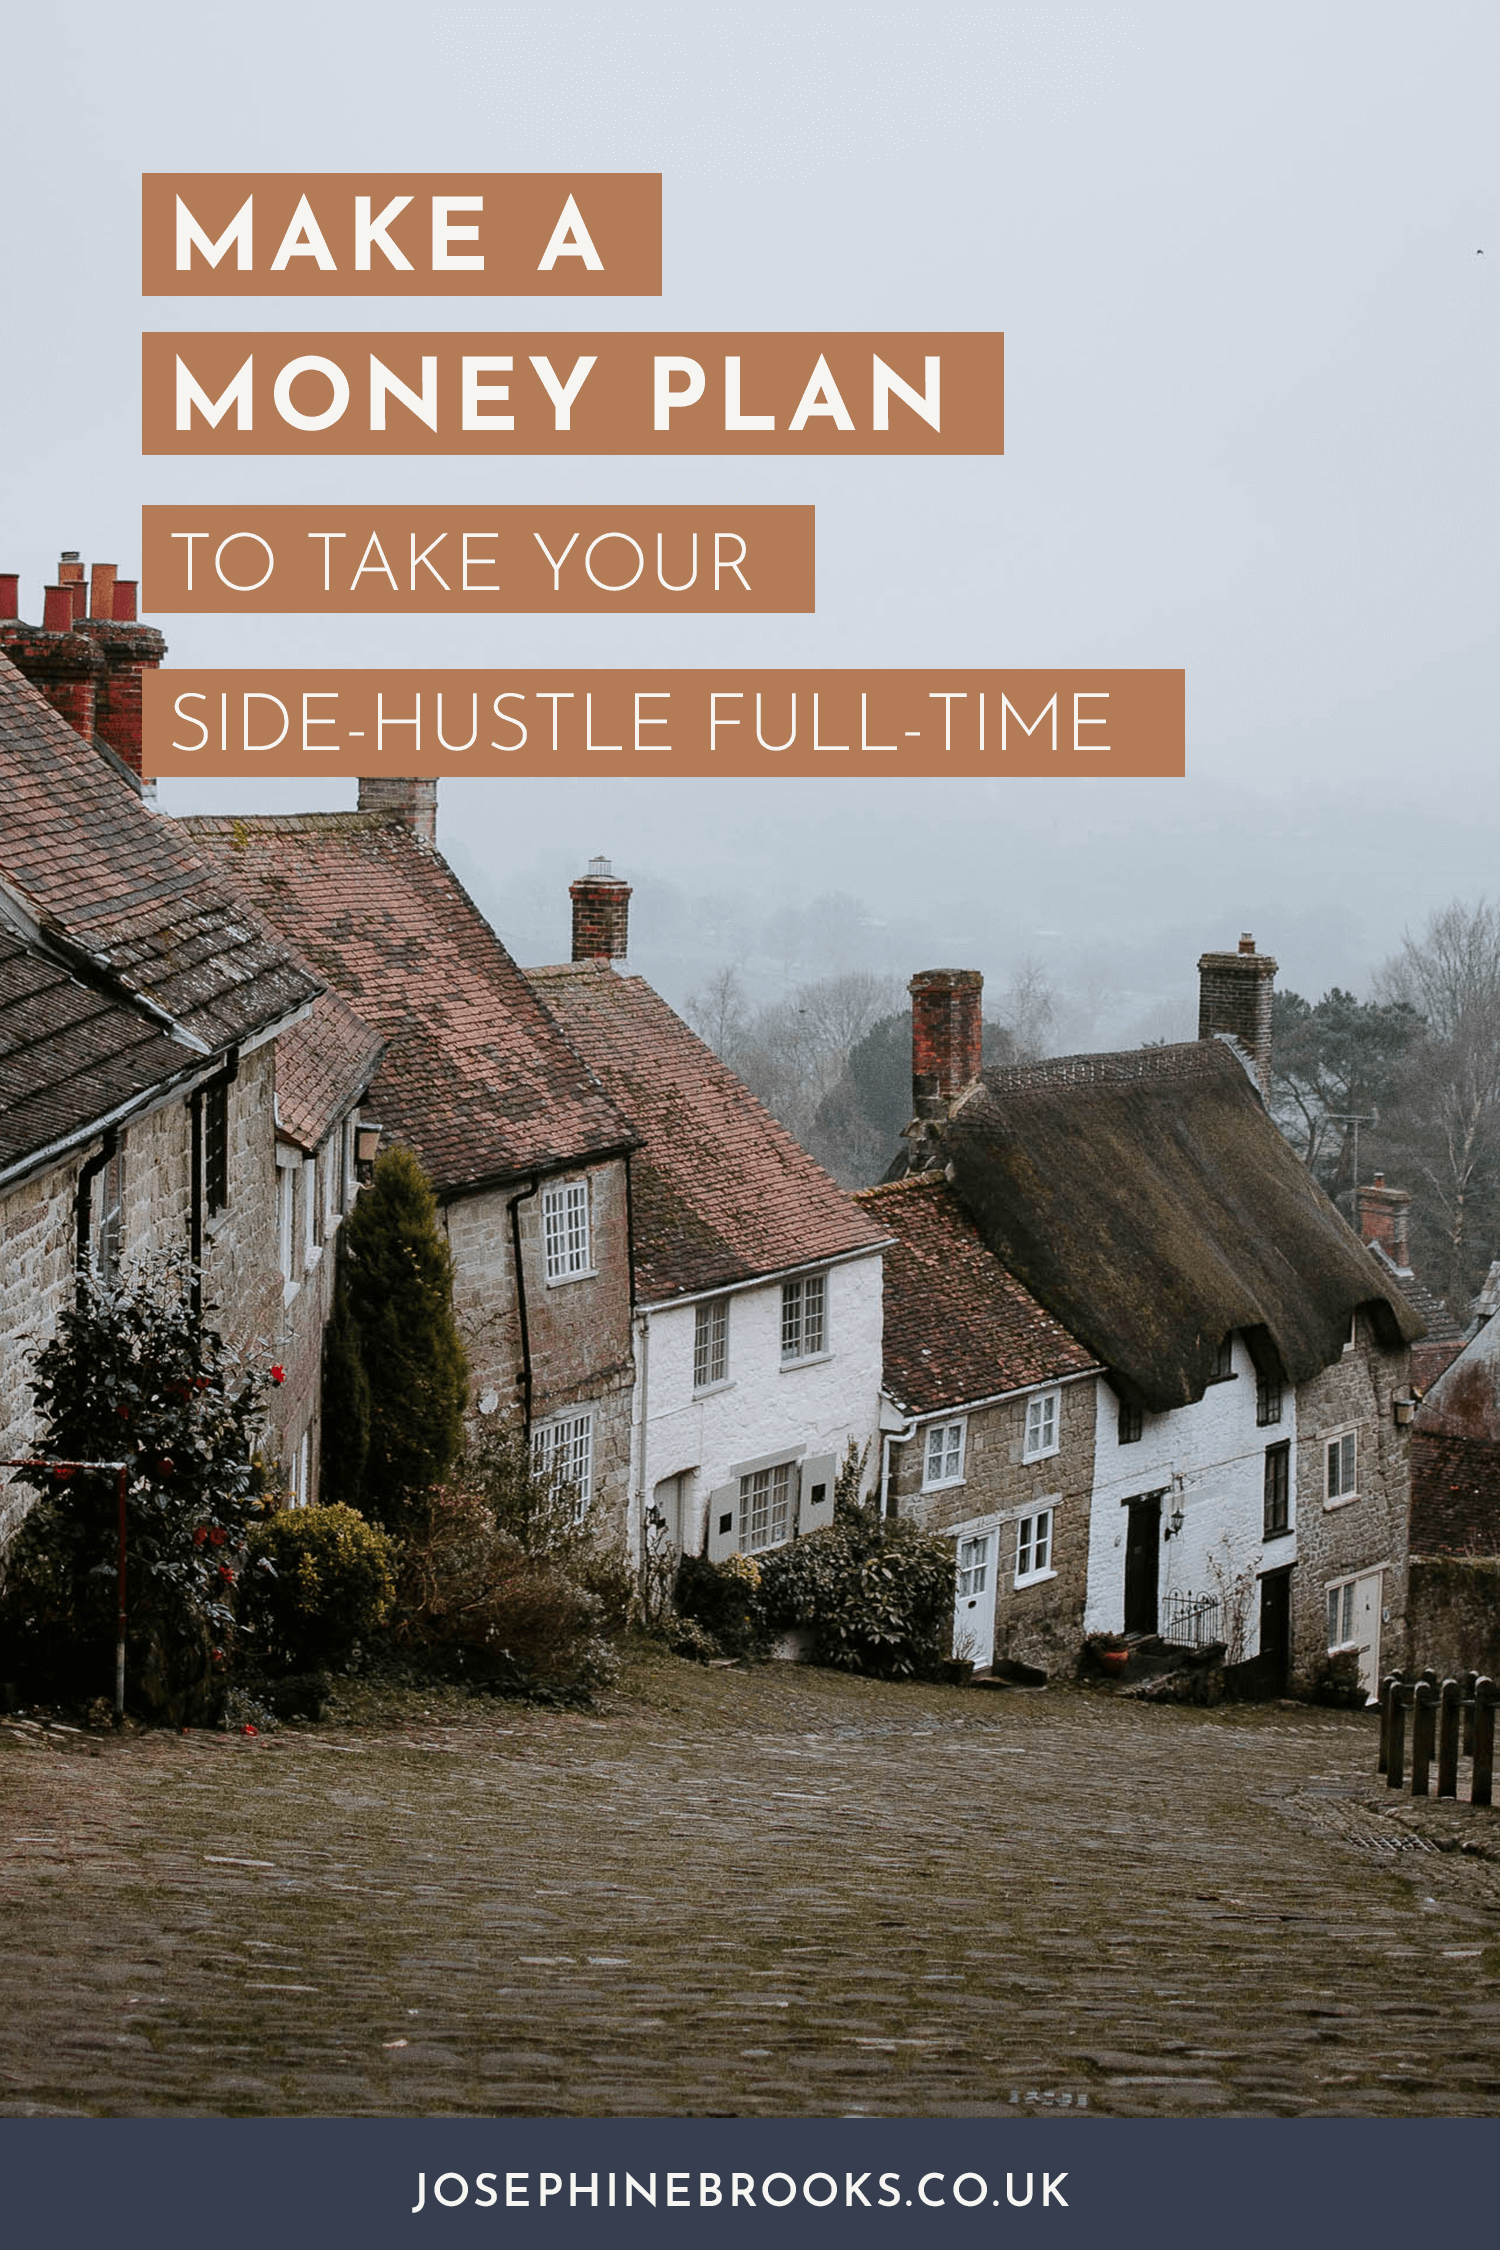 Make a money plan to escape your 9-5 take your side-hustle full-time, growing a business, replacing your income with a side-hustle, escaping the 9-5, How to build a business so I can leave my job | Josephine Brooks